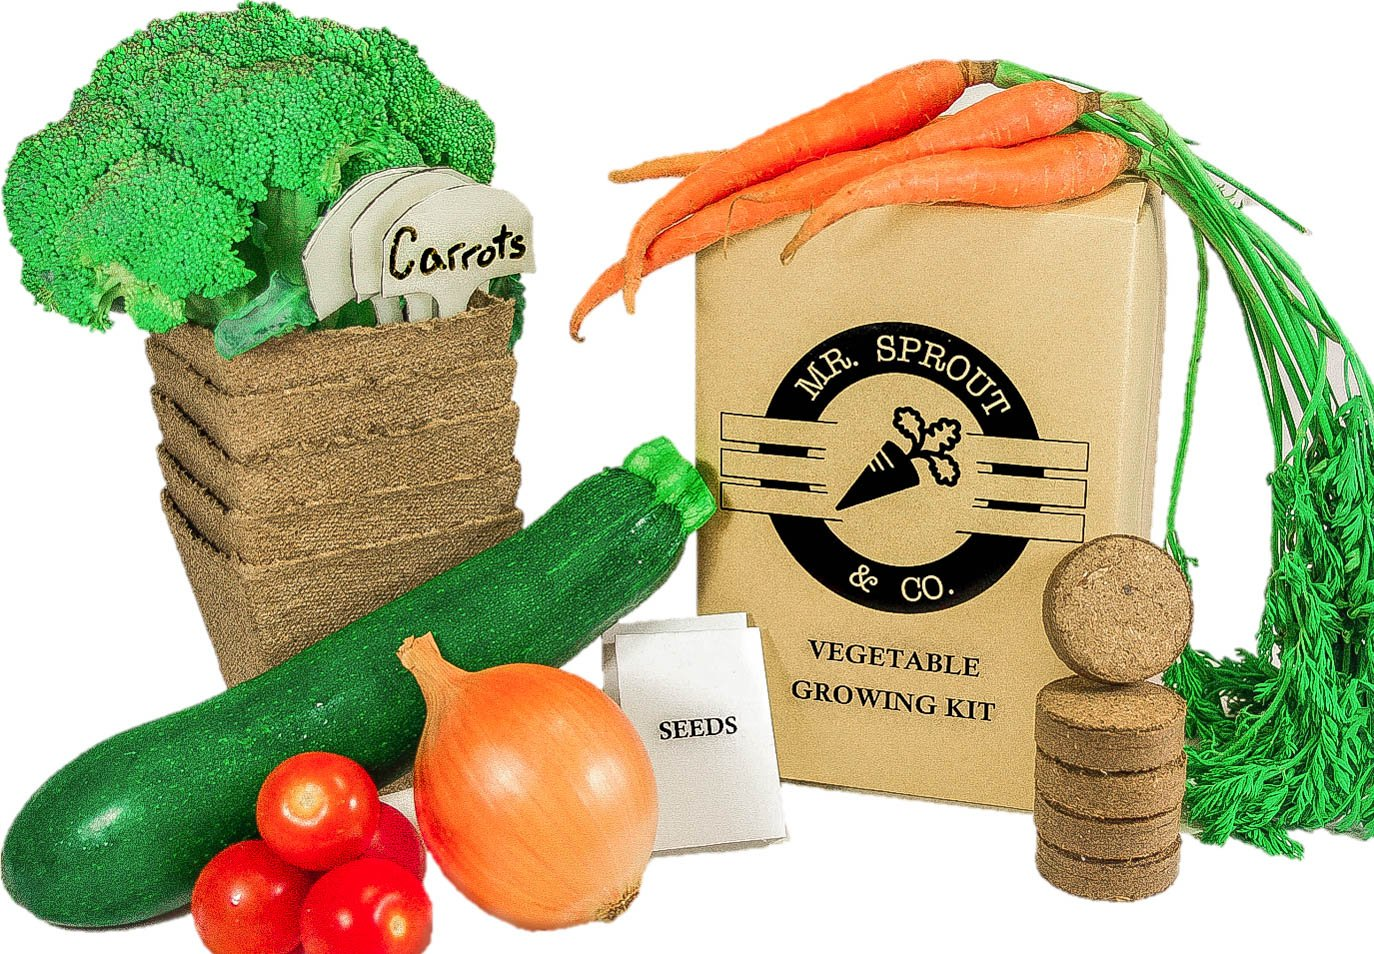 Mr. Sprout & Co Organic Vegetable Garden Kit - Vegetable Garden Seed Starter Kit for Kids, Adults Or Gift Idea- Includes Seeds for Cherry Tomatoes, Broccoli, Onions, Carrots, Zucchini by Mr. Sprout & Co.